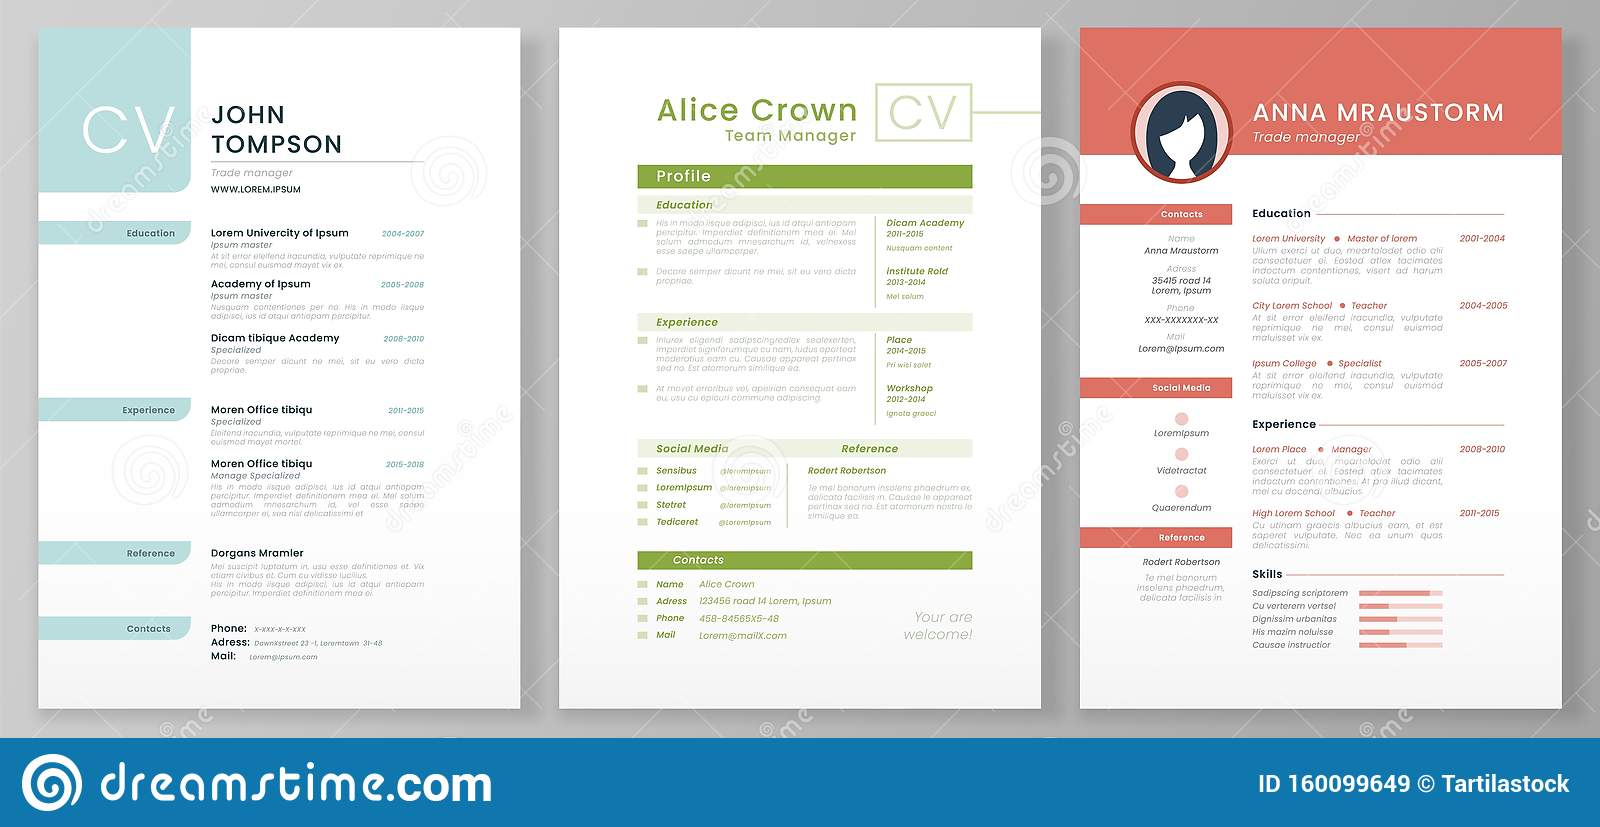 personal resume template  artistic profile  professional cv forms and minimalist resumes mockup